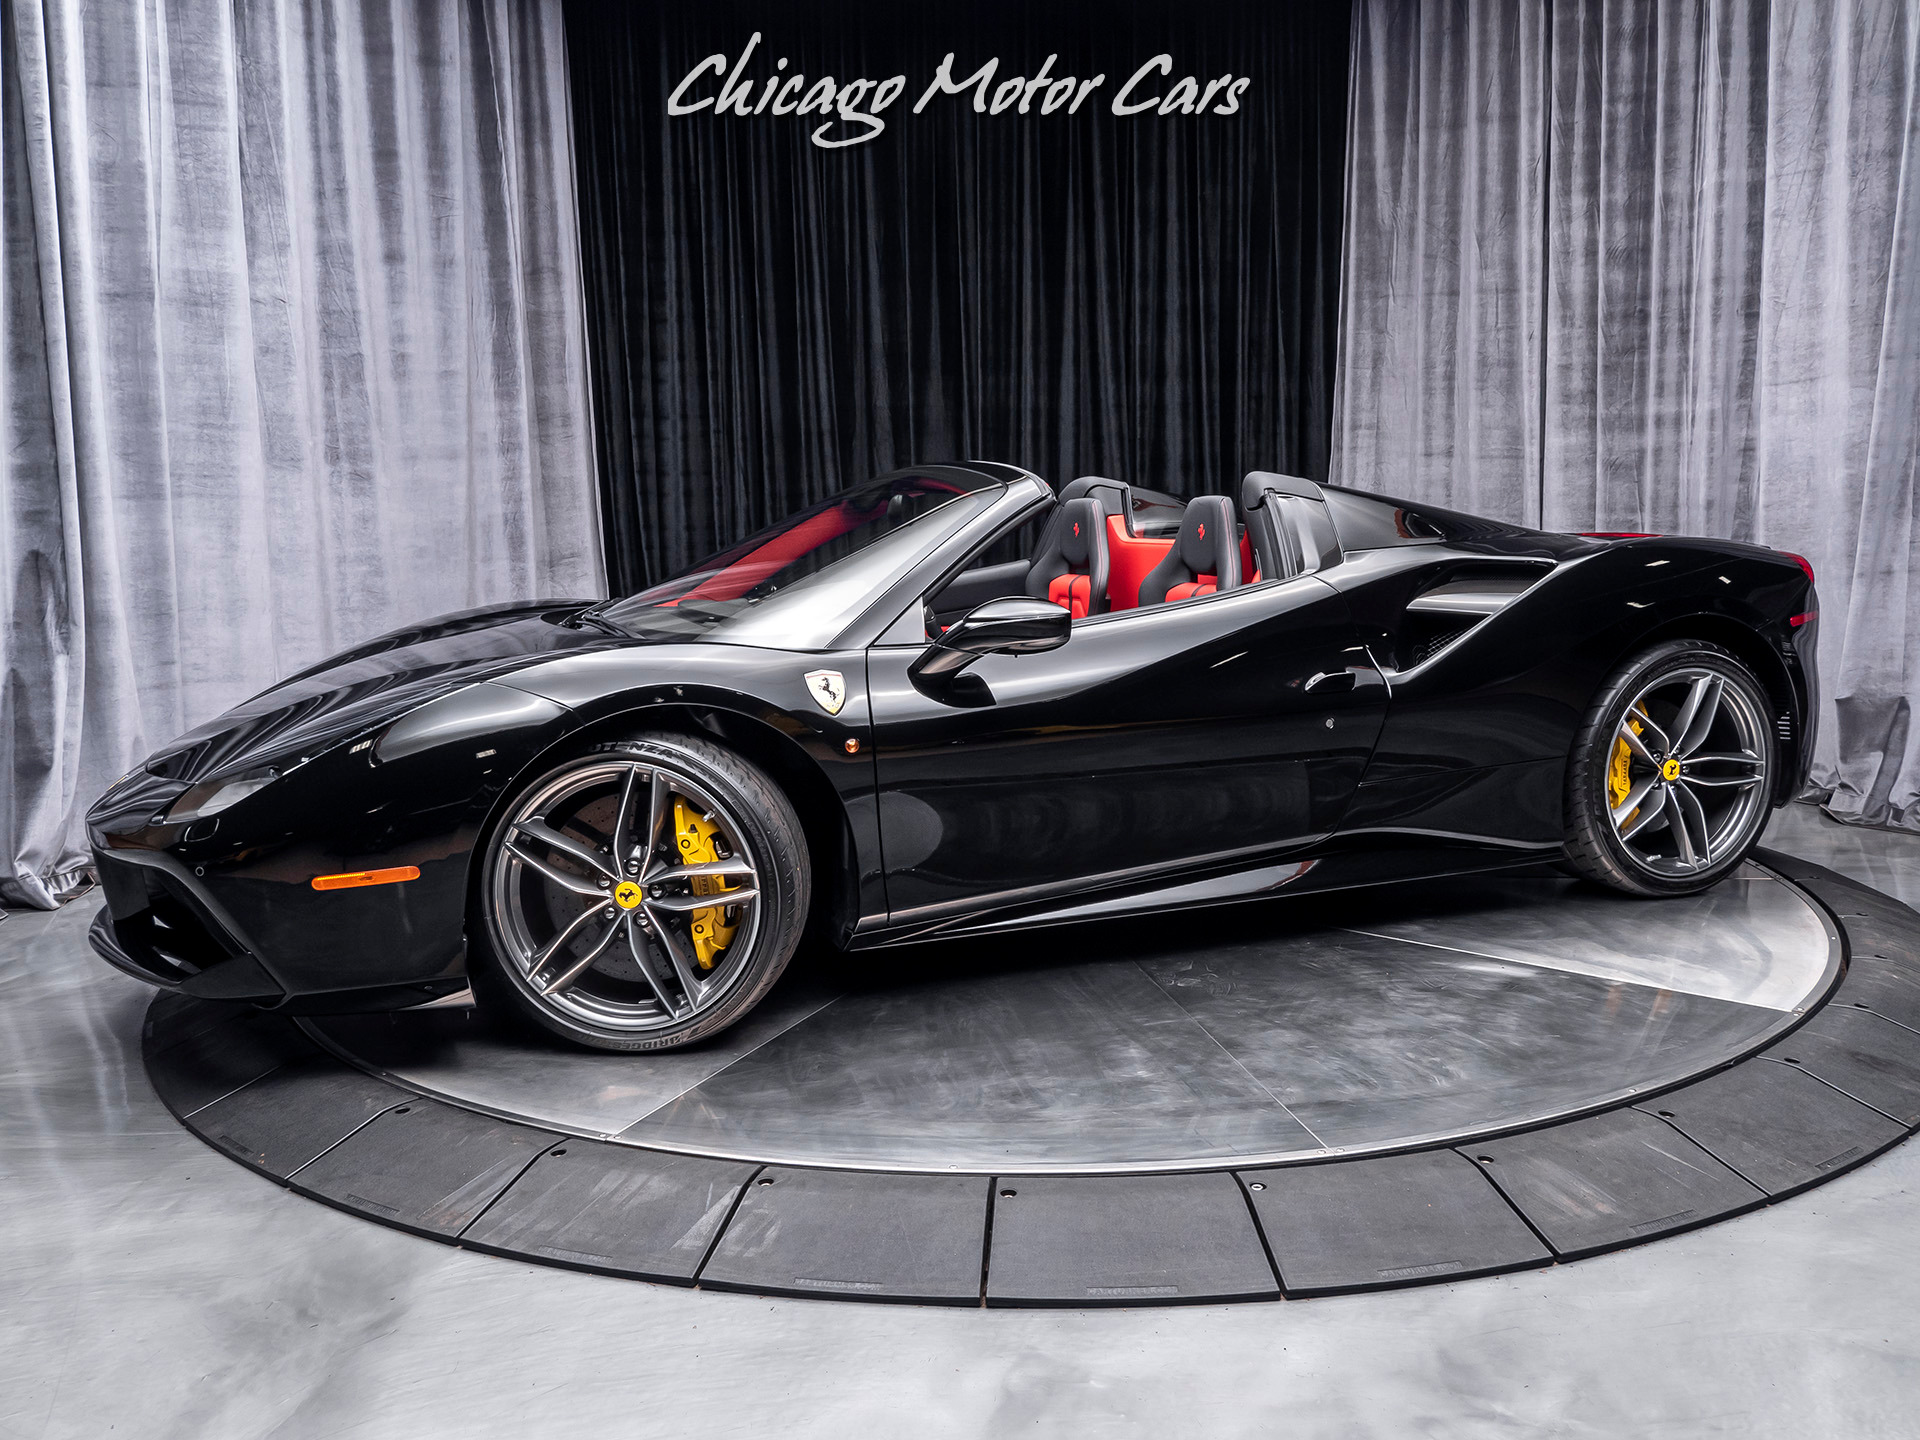 Used 2018 Ferrari 488 Spider Convertible Only 1600 Miles